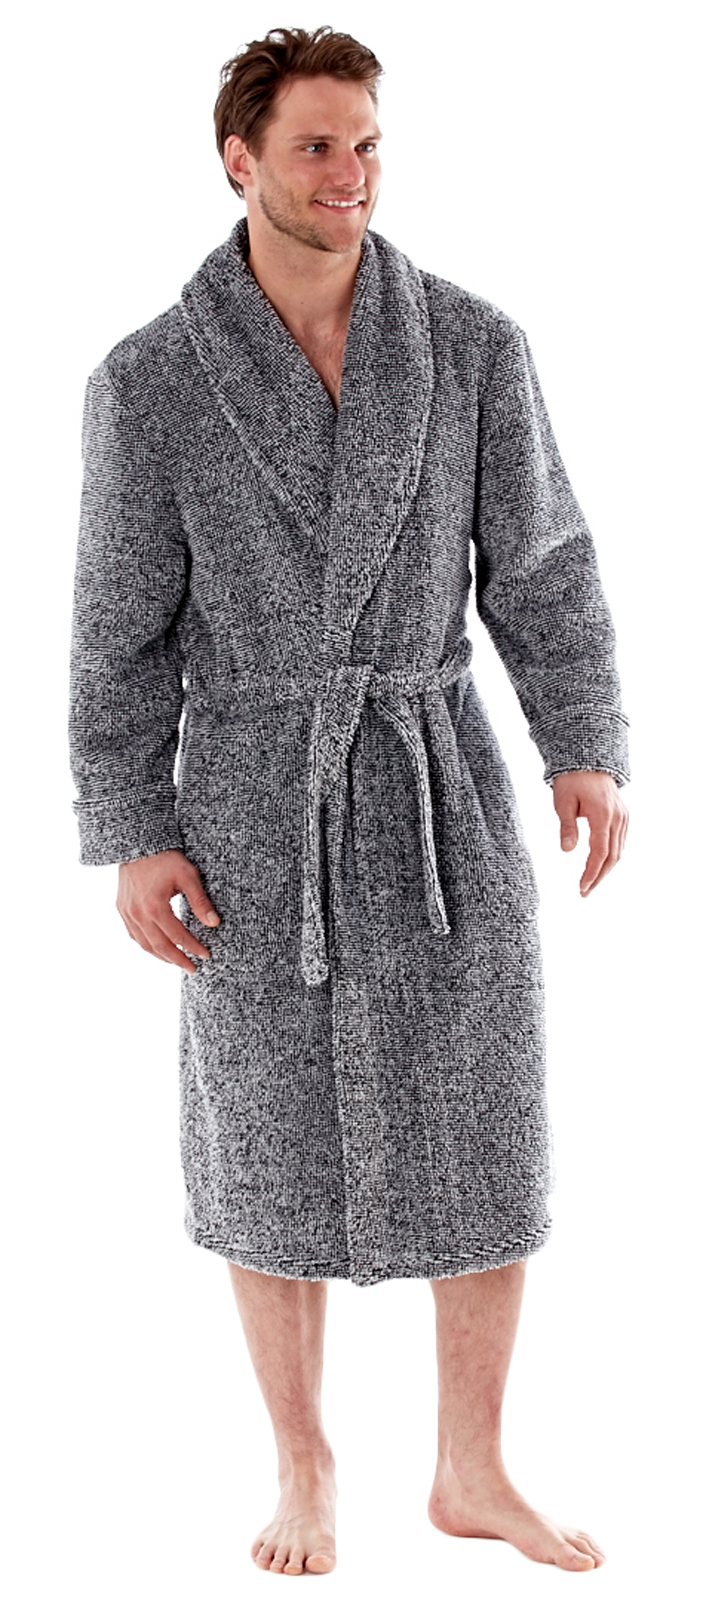 Luxury Mens Grey Marl Fleece Dressing Gown Gents Bath Robe House